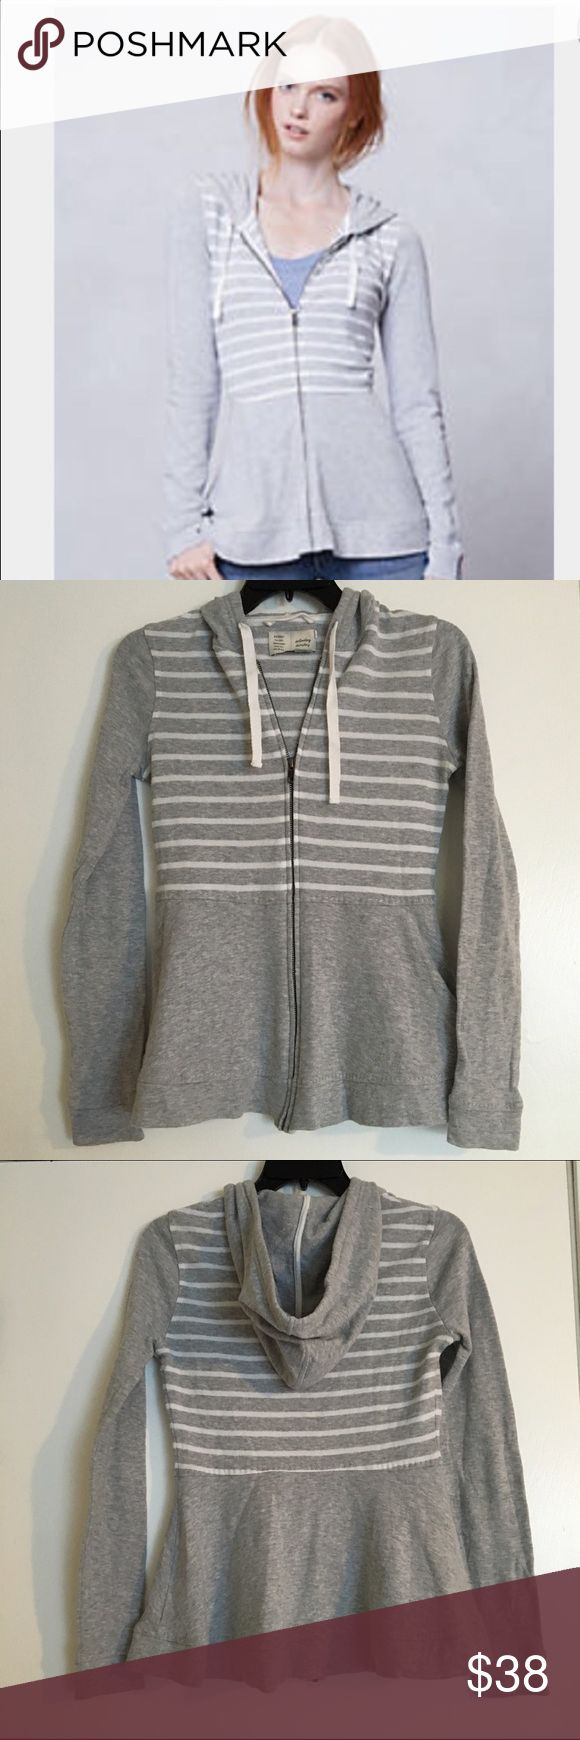 "Anthropologie peplum zip up sweatshirt Gray and white zip up sweatshirt with hood. Brand is Saturday Sunday for Anthro. Lightweight, cute peplum shape and contrast stitching, and in great condition with a few minor fuzzies. No pockets. Size small, chest measures 16"" across and length is 25"". 👍bundles Anthropologie Tops Sweatshirts & Hoodies"